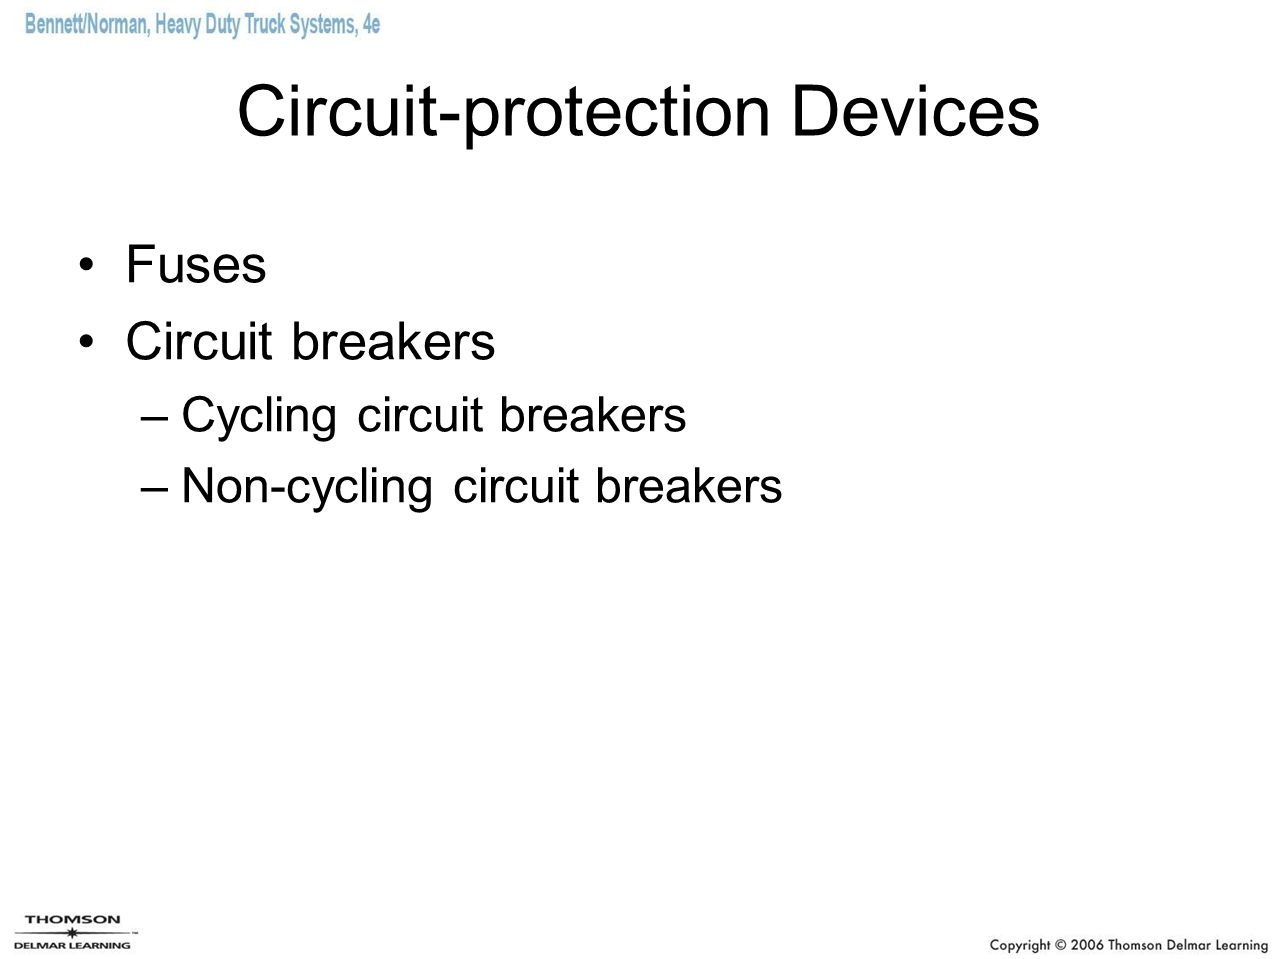 Circuit-protection Devices